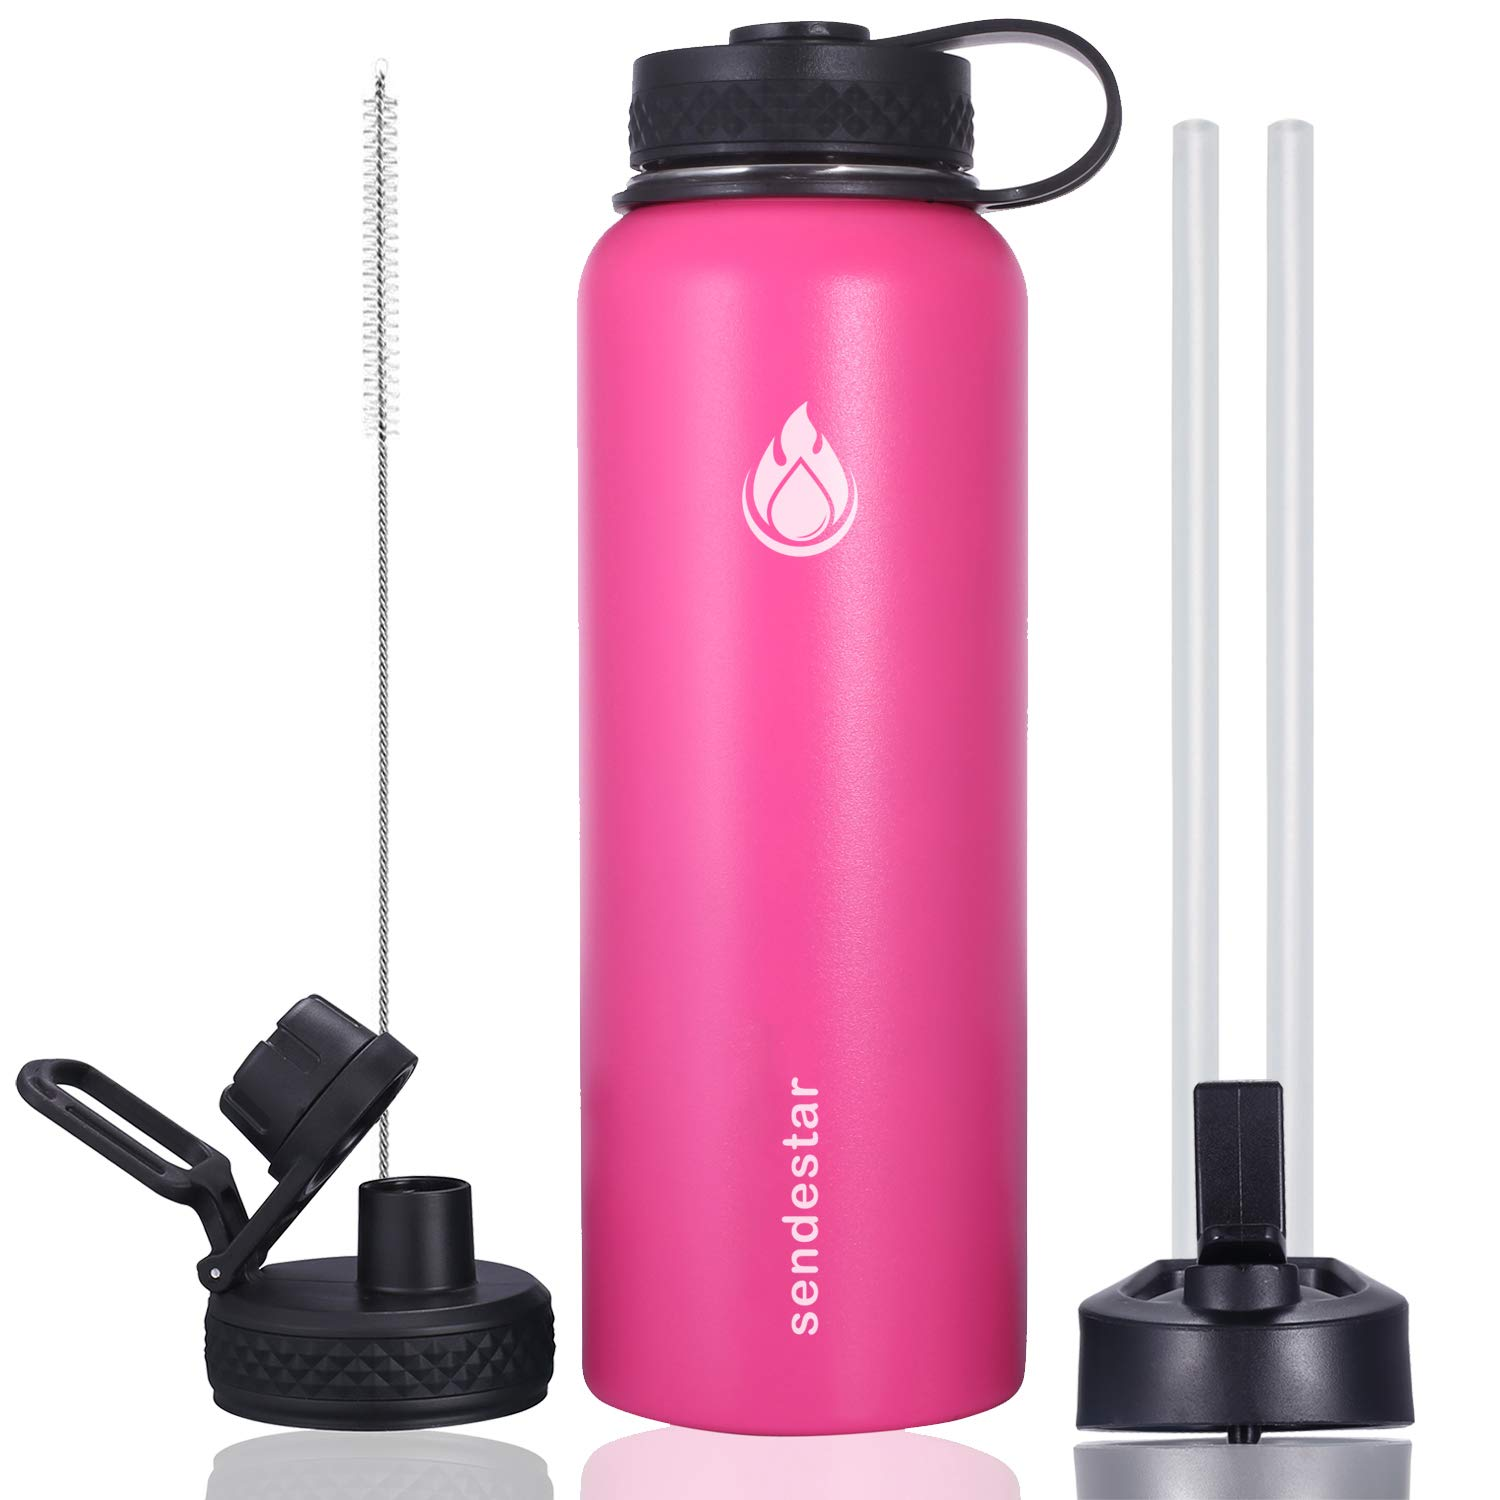 Sendestar 32 oz or 40 oz Double Wall Vacuum Insulated Leak Proof Stainless Steel Sports Water Bottle -Wide Mouth with Straw Lid & Flex Cap & Spout Lid (40 oz, Pink)